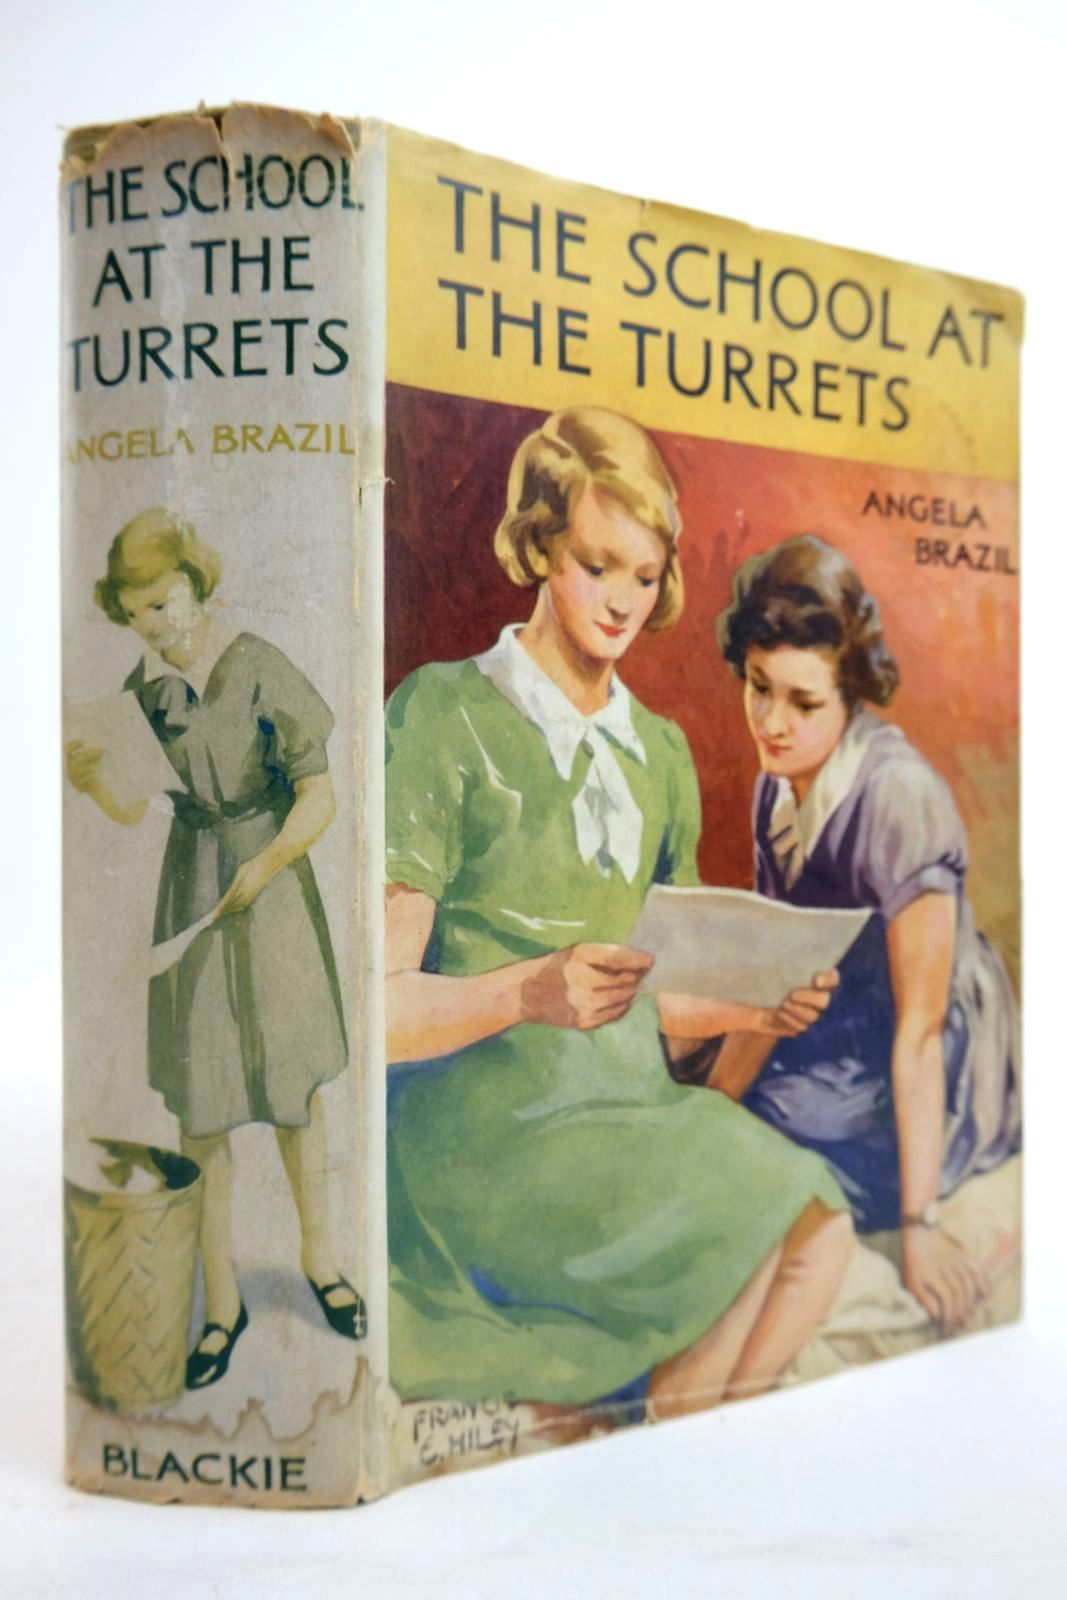 Photo of THE SCHOOL AT THE TURRETS written by Brazil, Angela illustrated by Hiley, Francis E. published by Blackie & Son Ltd. (STOCK CODE: 2134451)  for sale by Stella & Rose's Books